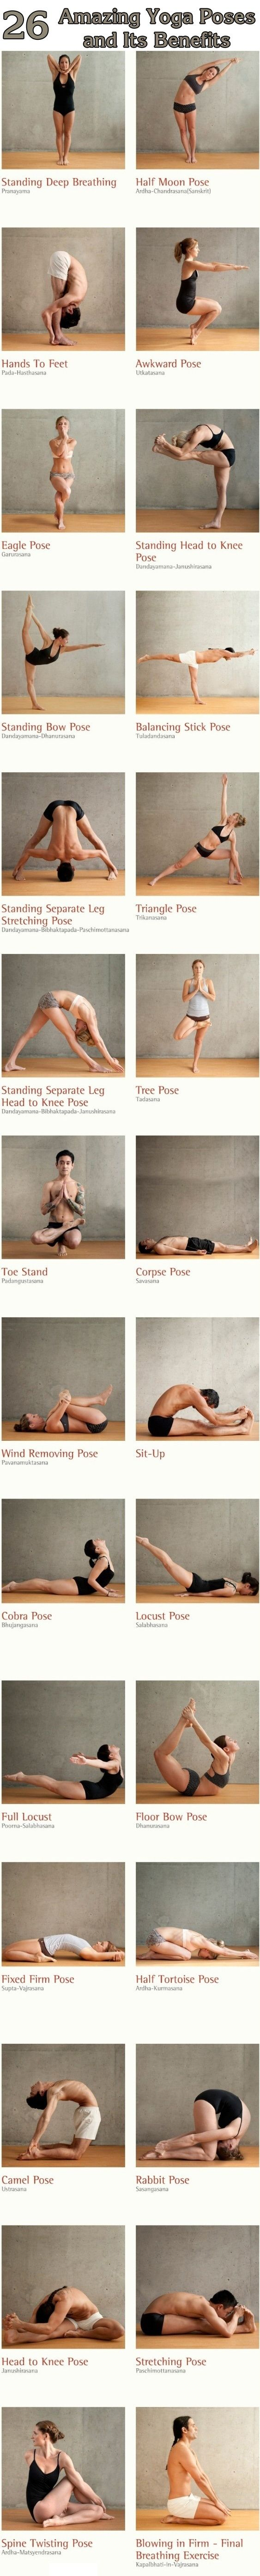 Yoga poses for wellness